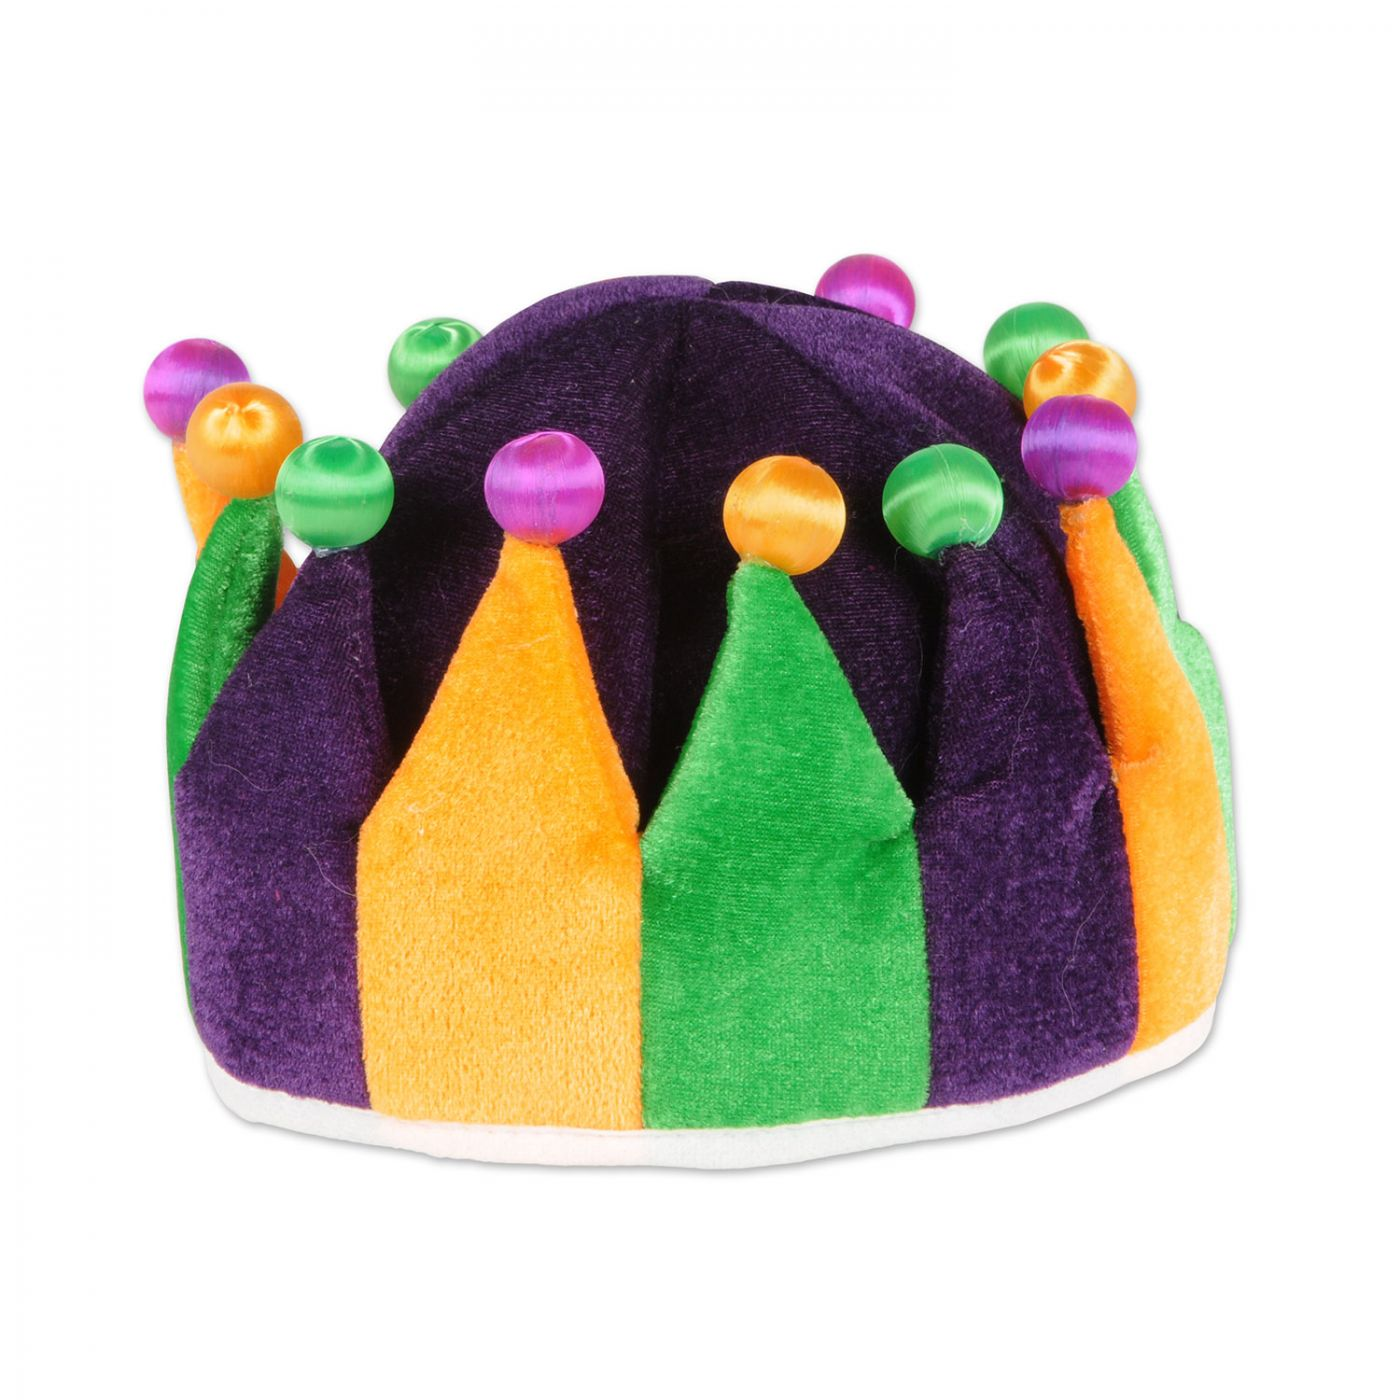 Plush Jester Crown (6) image